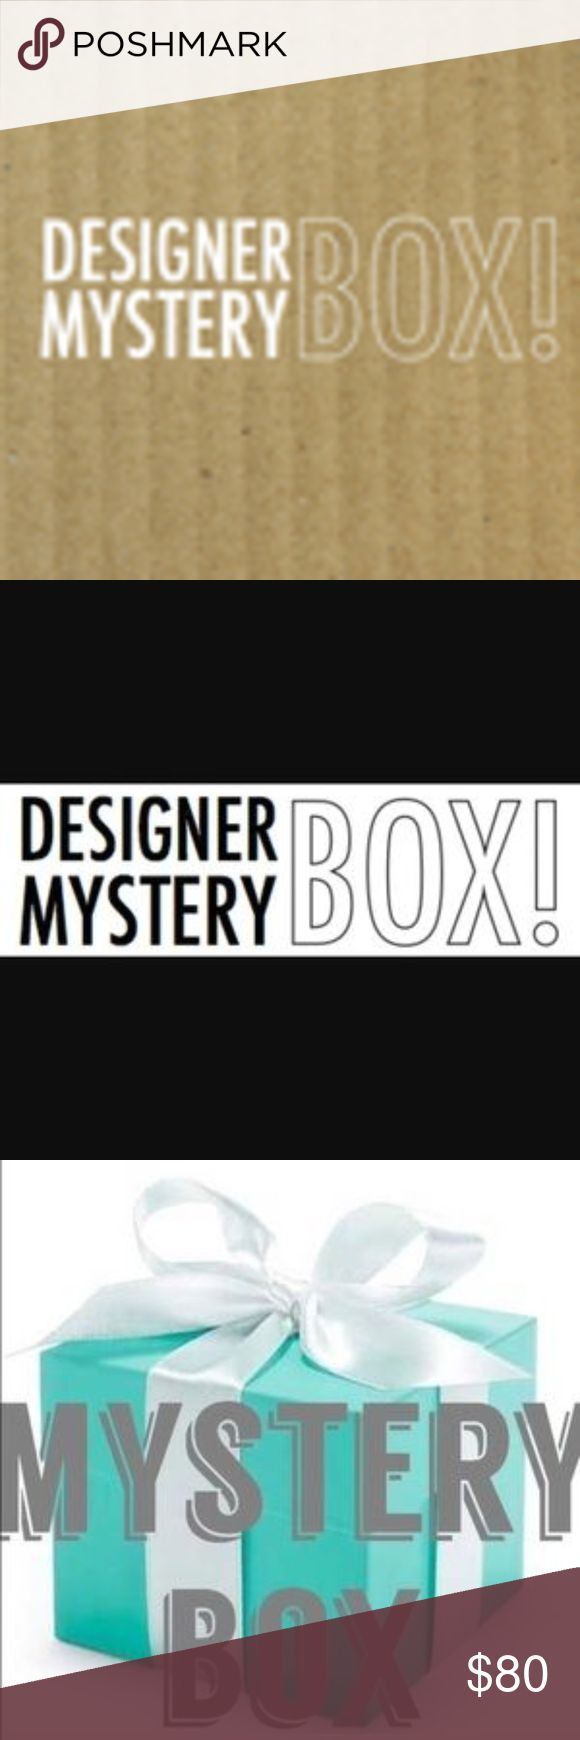 Designer Brand Reseller's Mystery Box of AWESOME! A great way to start/add to your Posh Closet. You get: 5-6 assorted Brands and sizes of Designer pieces. IF YOU ARE LOOKING FOR SPECIFIC SIZES LET ME KNOW. The box will include AT LEAST 2 Posh Party Brands including but not limited to: MK, Kate, Lulu, Urban Outfitters, Zara, Free People, Trina Turk, Anthro, White House Black Mkt, BCBG, R&R, Ann Taylor, Vince Camuto, Lucky, Liz, Chicos, Tahari, Nike, Adidas, Tommy, bebe, Betsy, Anne Klein…